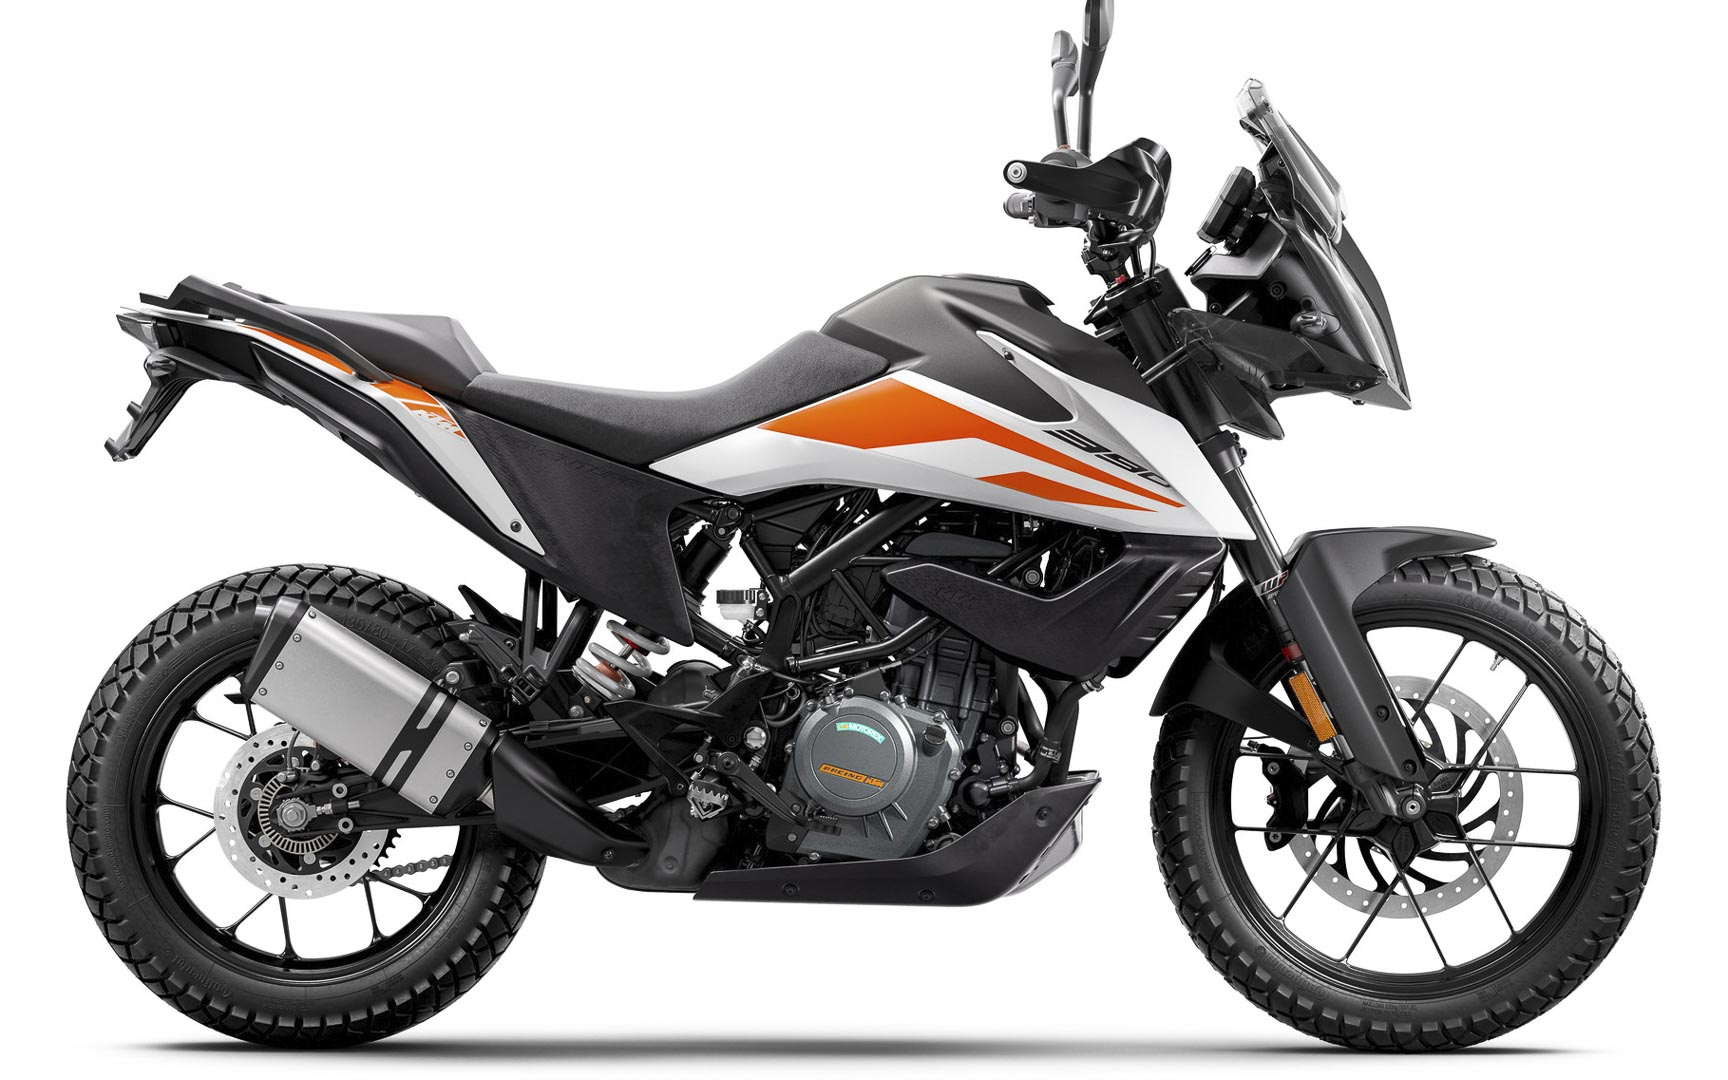 New WhiteKTM 2021 KTM 390 Adventure